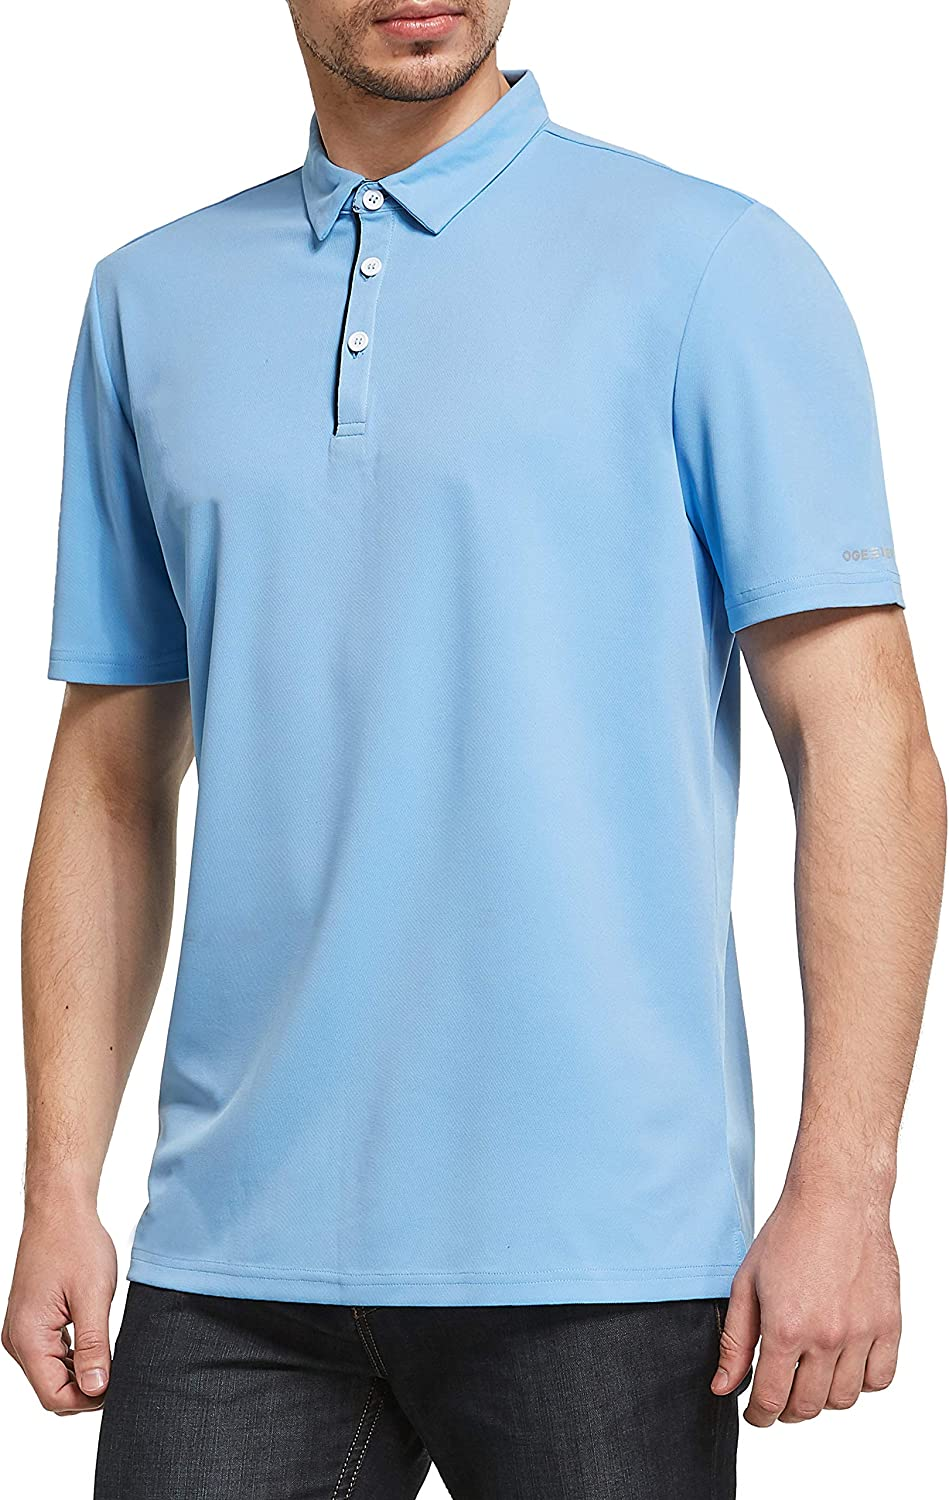 OGEENIER Men's Slim Fit Classic Short Sleeve Polo Shi Save Max 78% OFF money Pique Golf